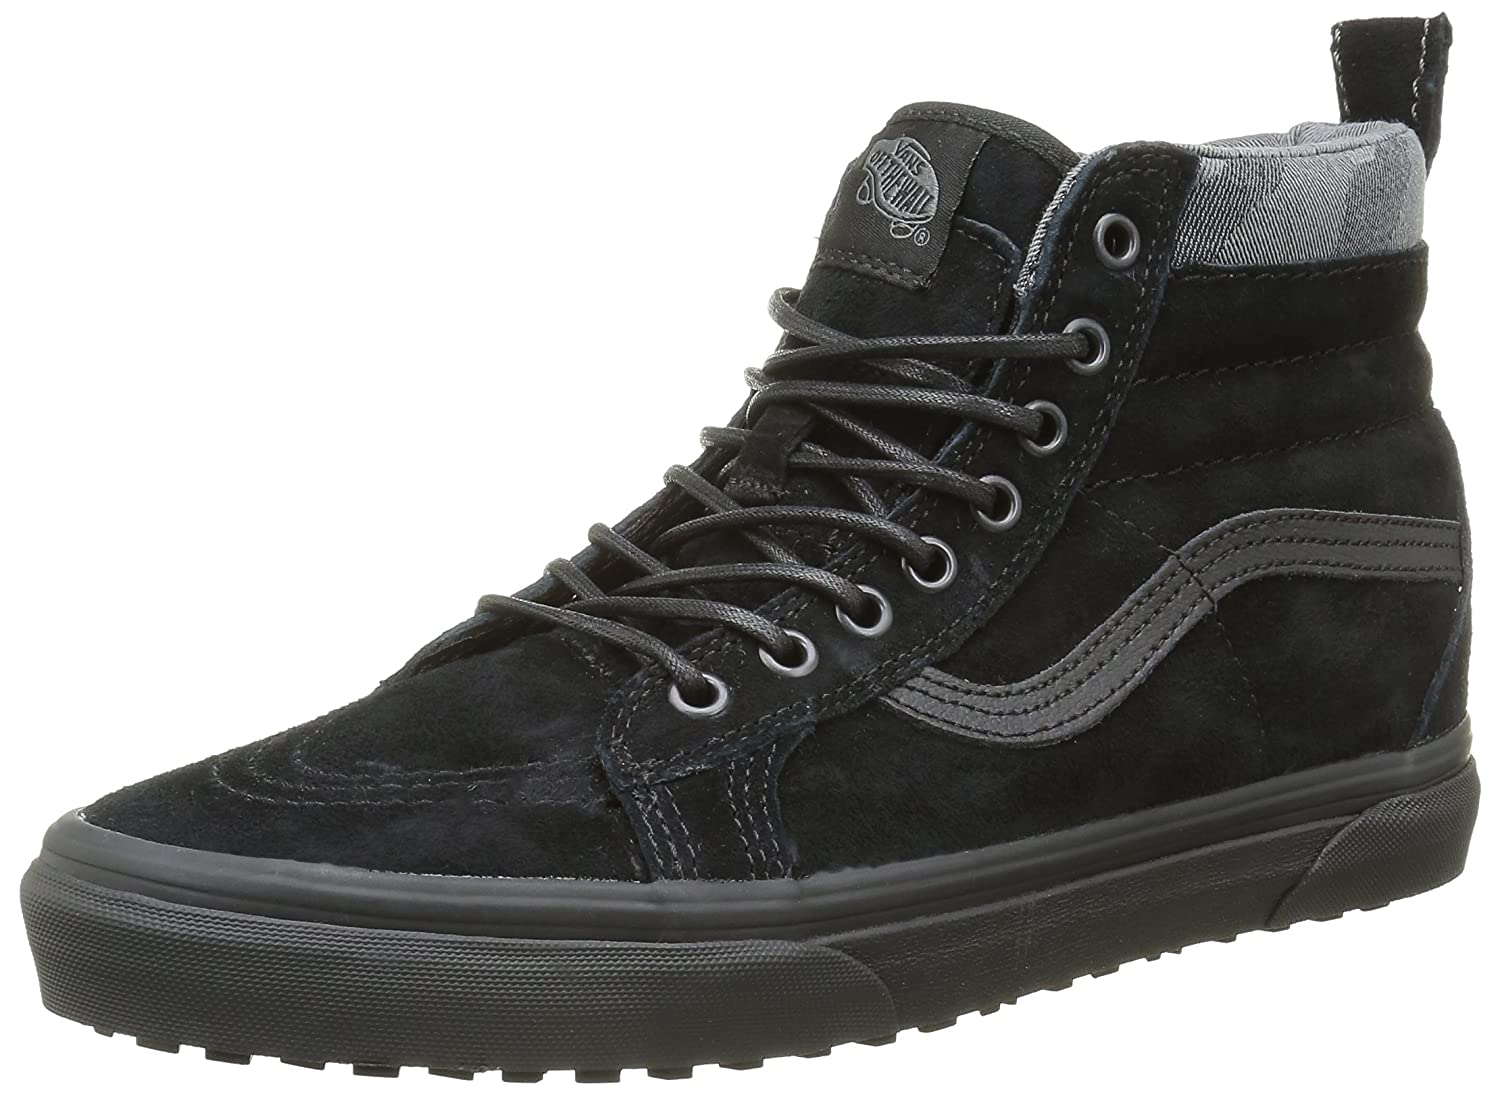 Vans Sk8-Hi Unisex Casual High-Top Skate Shoes, Comfortable and Durable in Signature Waffle Rubber Sole B019KVCCY6 7.5 M US Women / 6 M US Men|Black/Black Camo